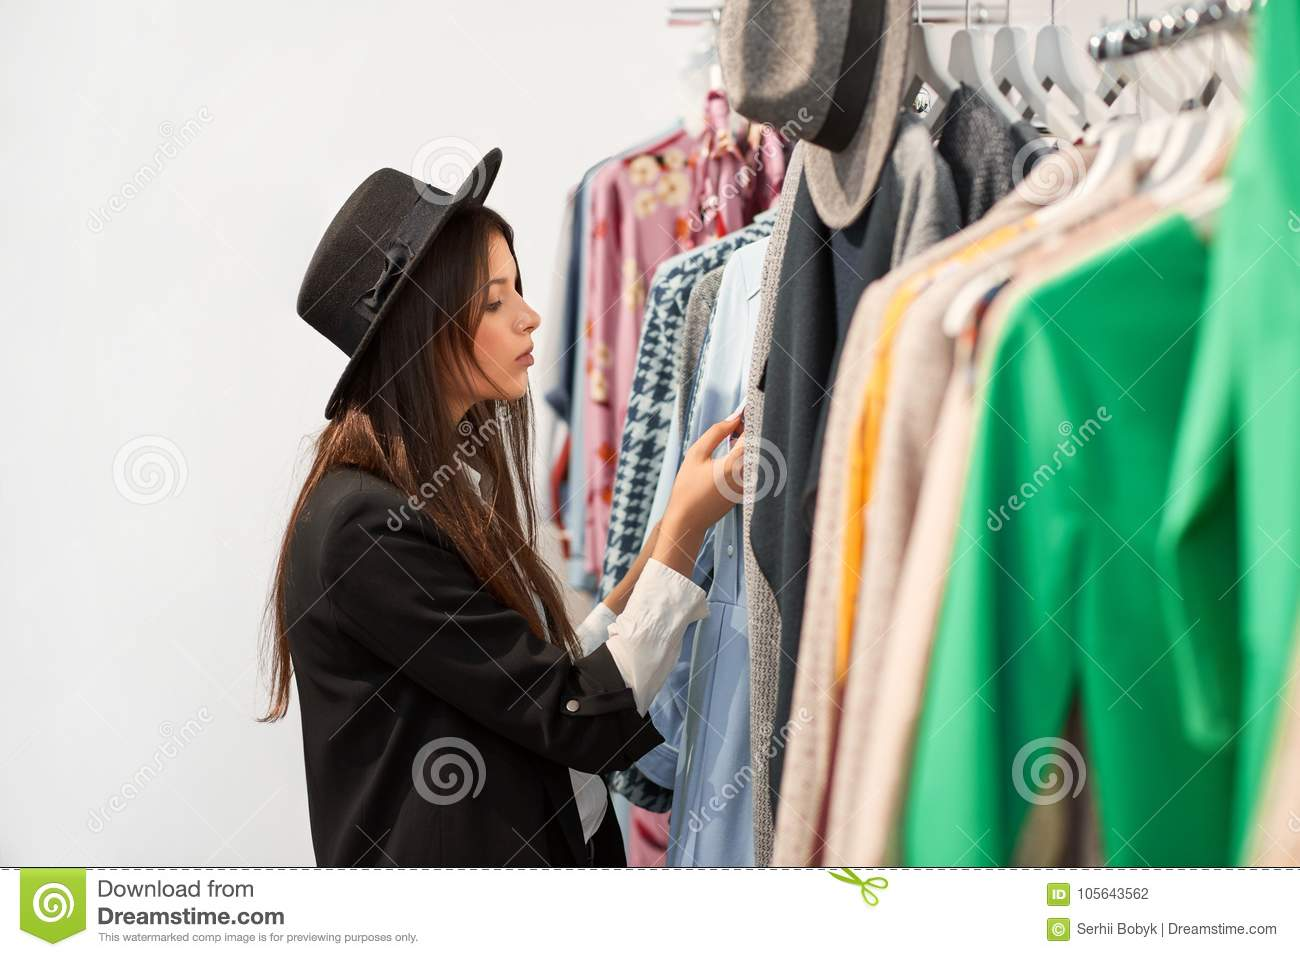 02ae3489473 Shot of a young woman examining clothing at the fashion store choosing  dresses to buy copyspace lifestyle wellbeing leisure activity beauty trendy  stylish ...